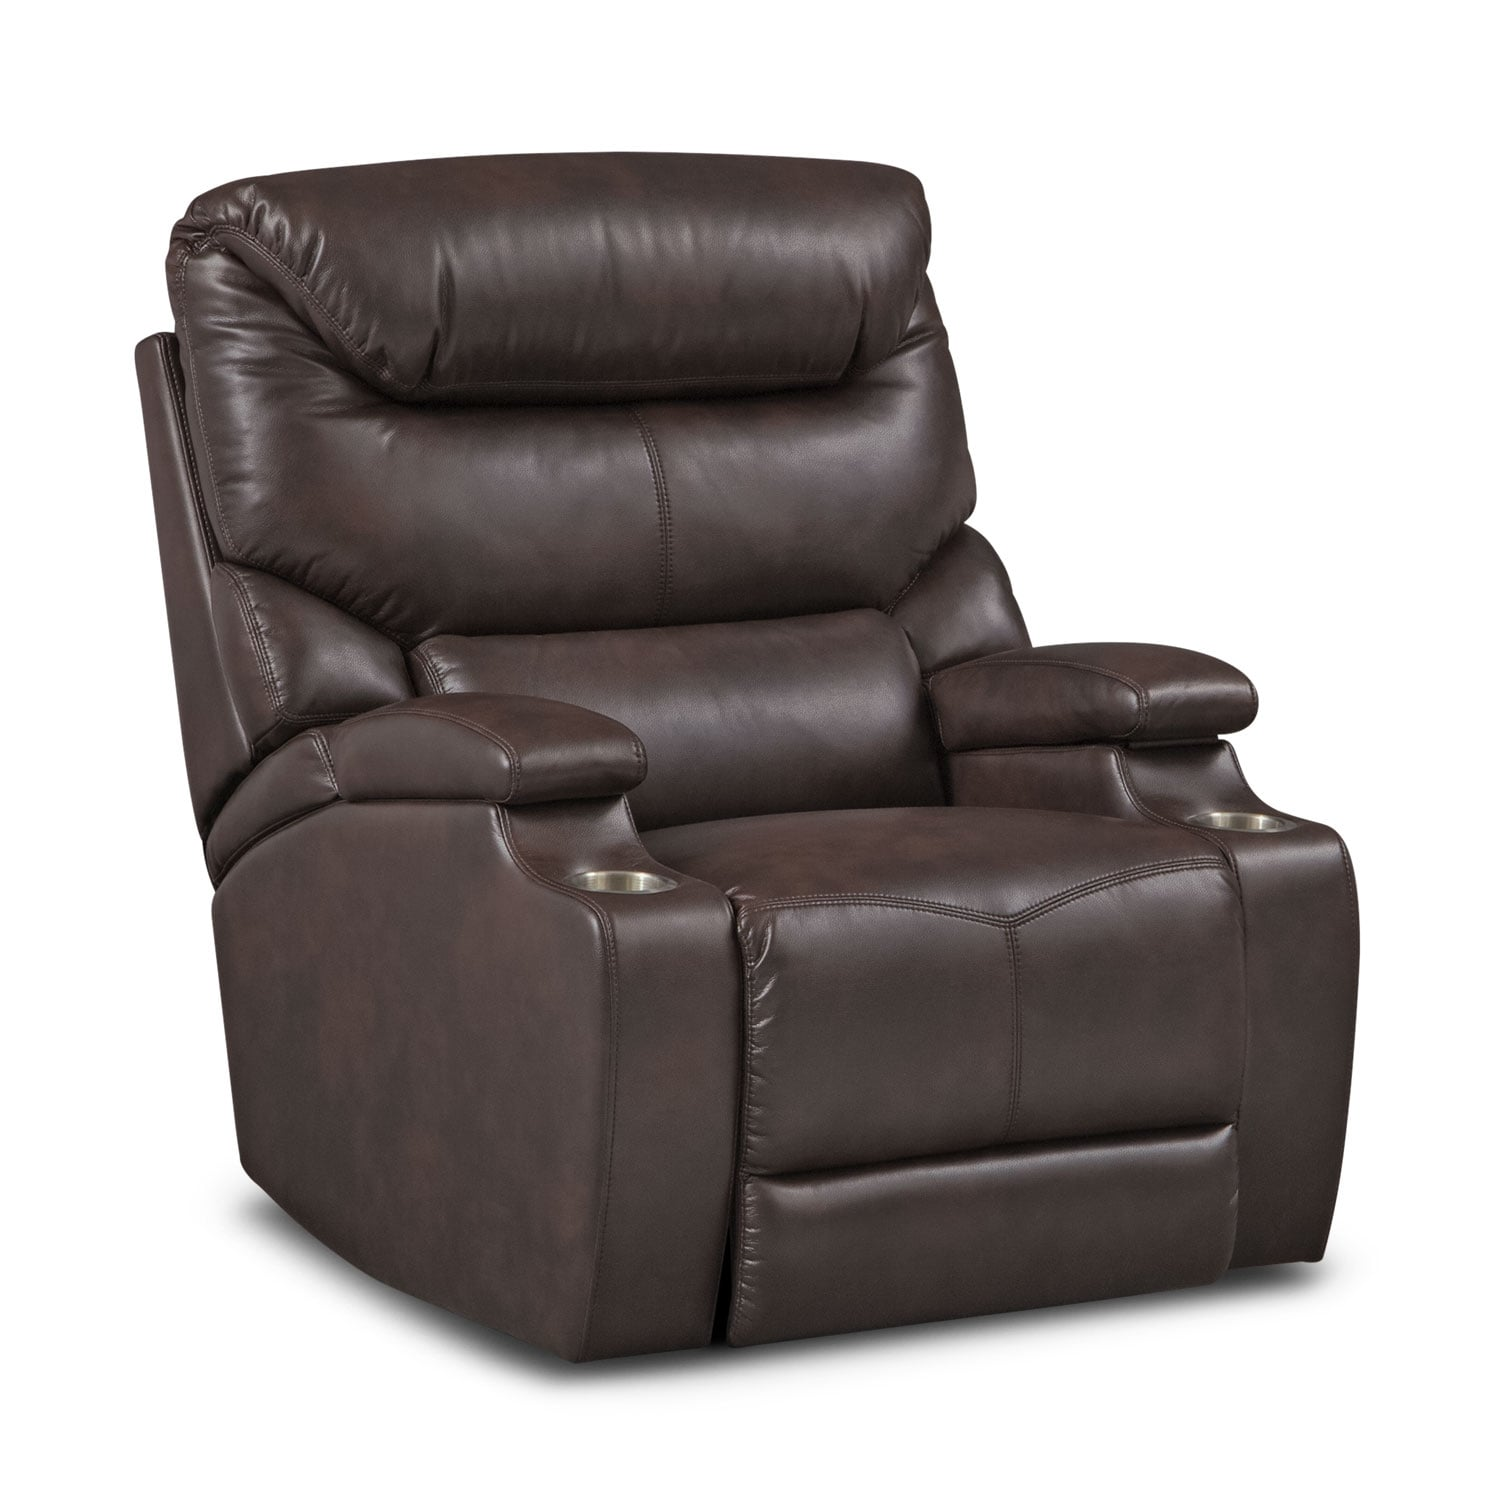 Living Room Furniture - Saturn Power Recliner - Brown